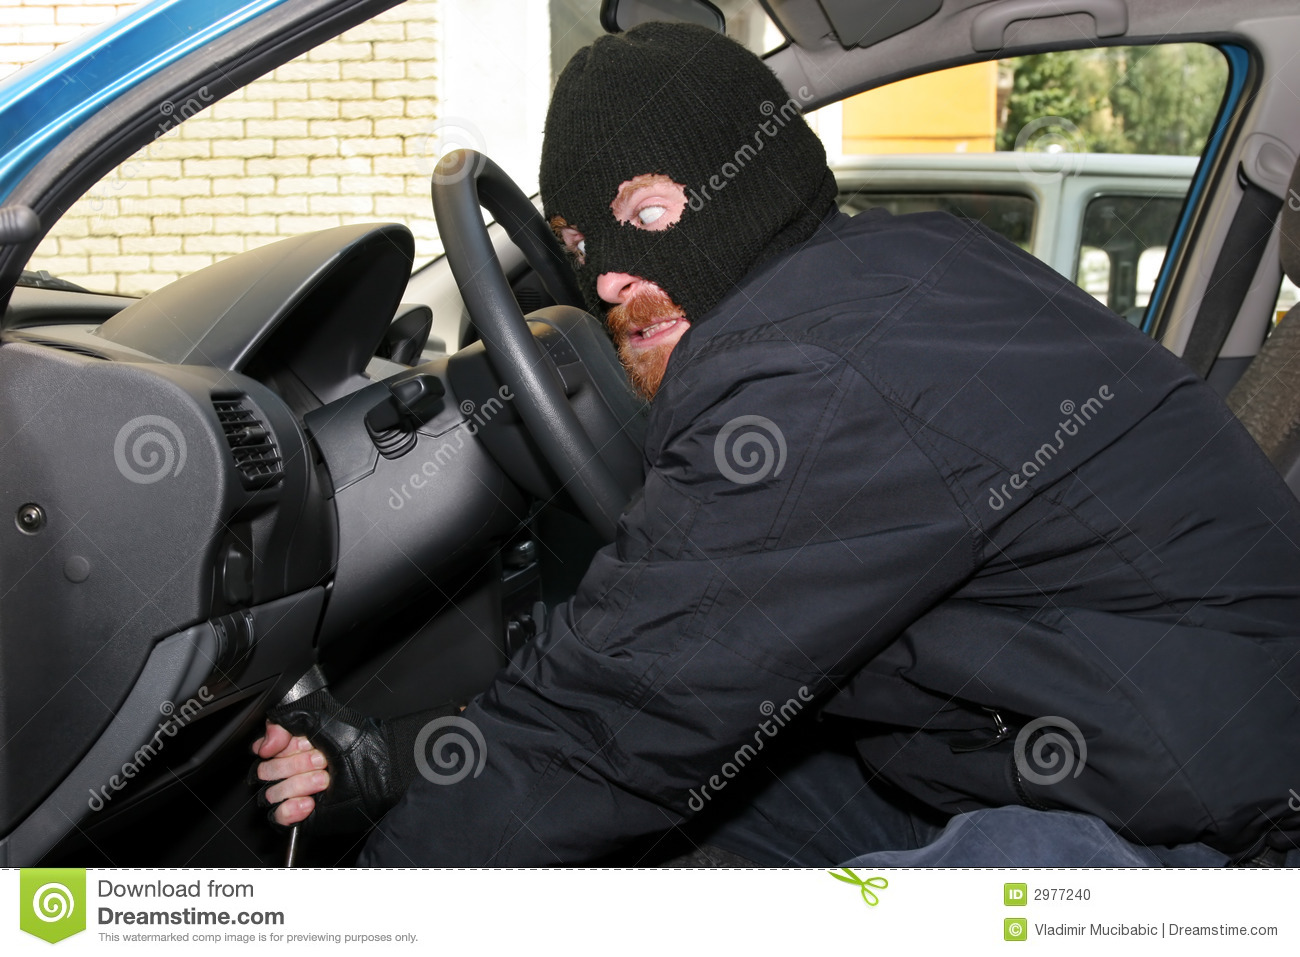 Car Burglary Stock Photo Image 2977240